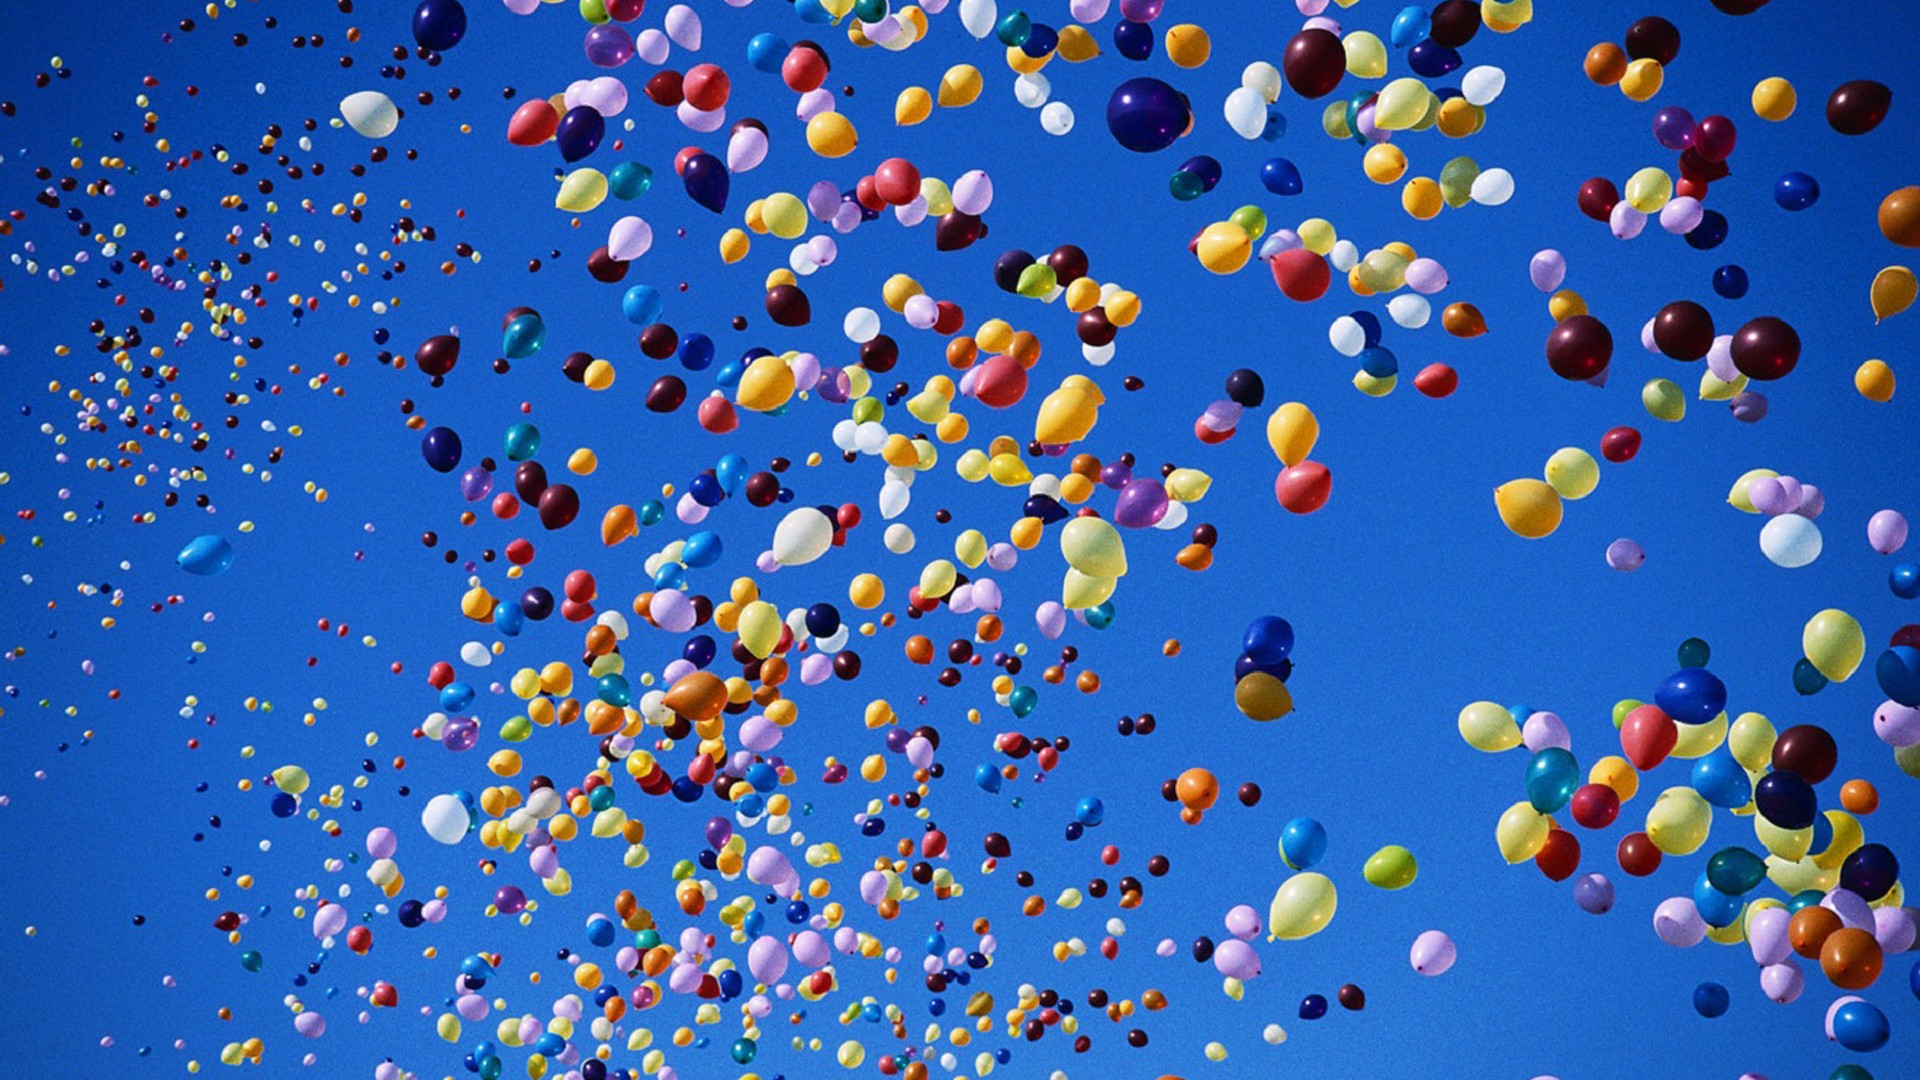 1920x1080 Multicolored Balloons On Blue Sky Desktop Pc And Mac Wallpaper